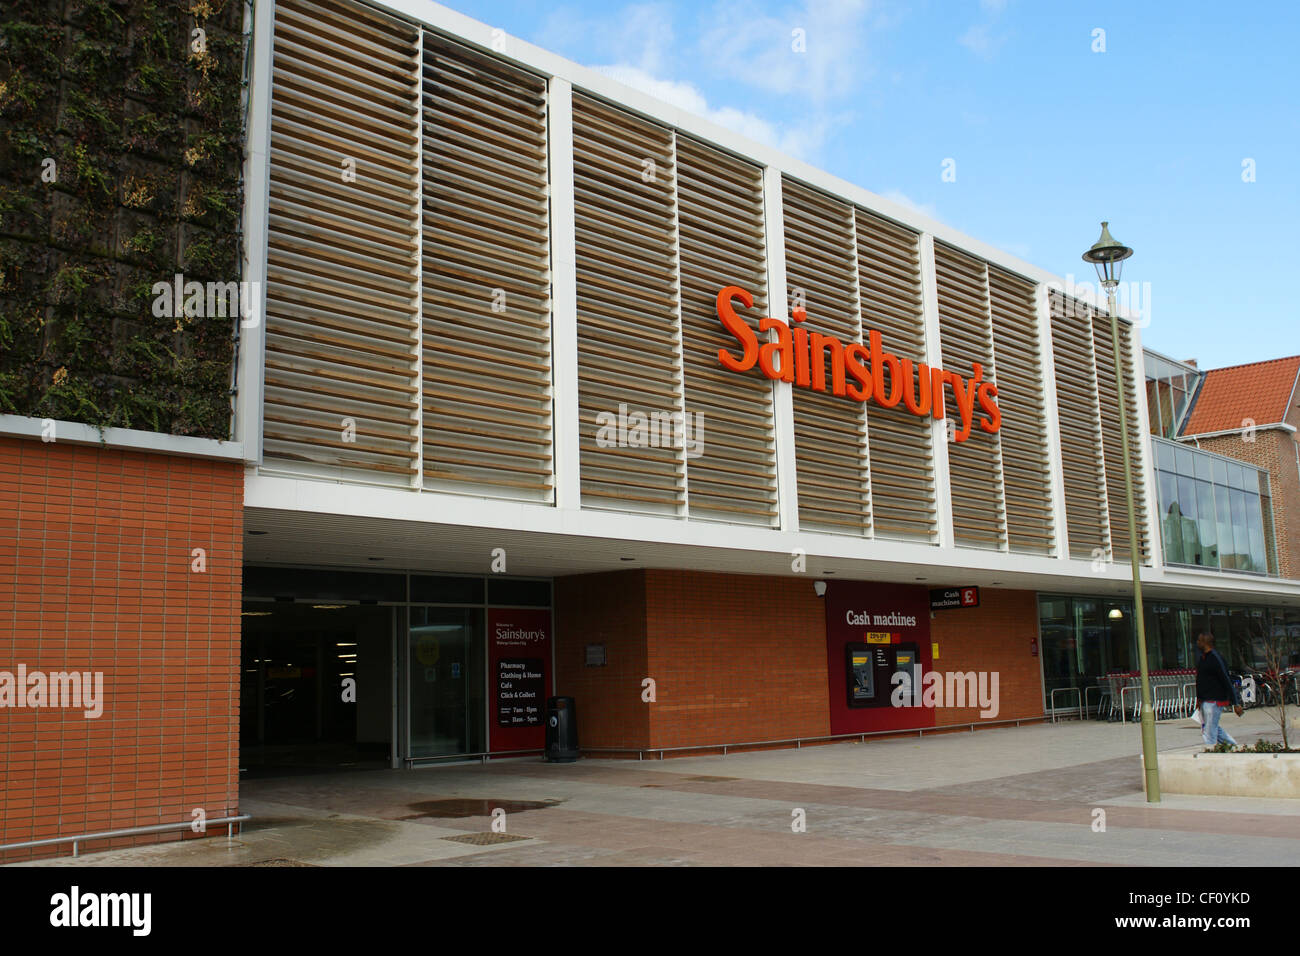 Ravishing Sainsburys Supermarket In Welwyn Garden City Stock Photo Royalty  With Entrancing Sainsburys Supermarket In Welwyn Garden City With Captivating Garden Centre In Norwich Also Garages Welwyn Garden City In Addition Busch Gardens Attractions And How To Make Hanging Gardens As Well As Poplars Nursery Garden Centre Additionally Belgo Covent Garden Menu From Alamycom With   Entrancing Sainsburys Supermarket In Welwyn Garden City Stock Photo Royalty  With Captivating Sainsburys Supermarket In Welwyn Garden City And Ravishing Garden Centre In Norwich Also Garages Welwyn Garden City In Addition Busch Gardens Attractions From Alamycom